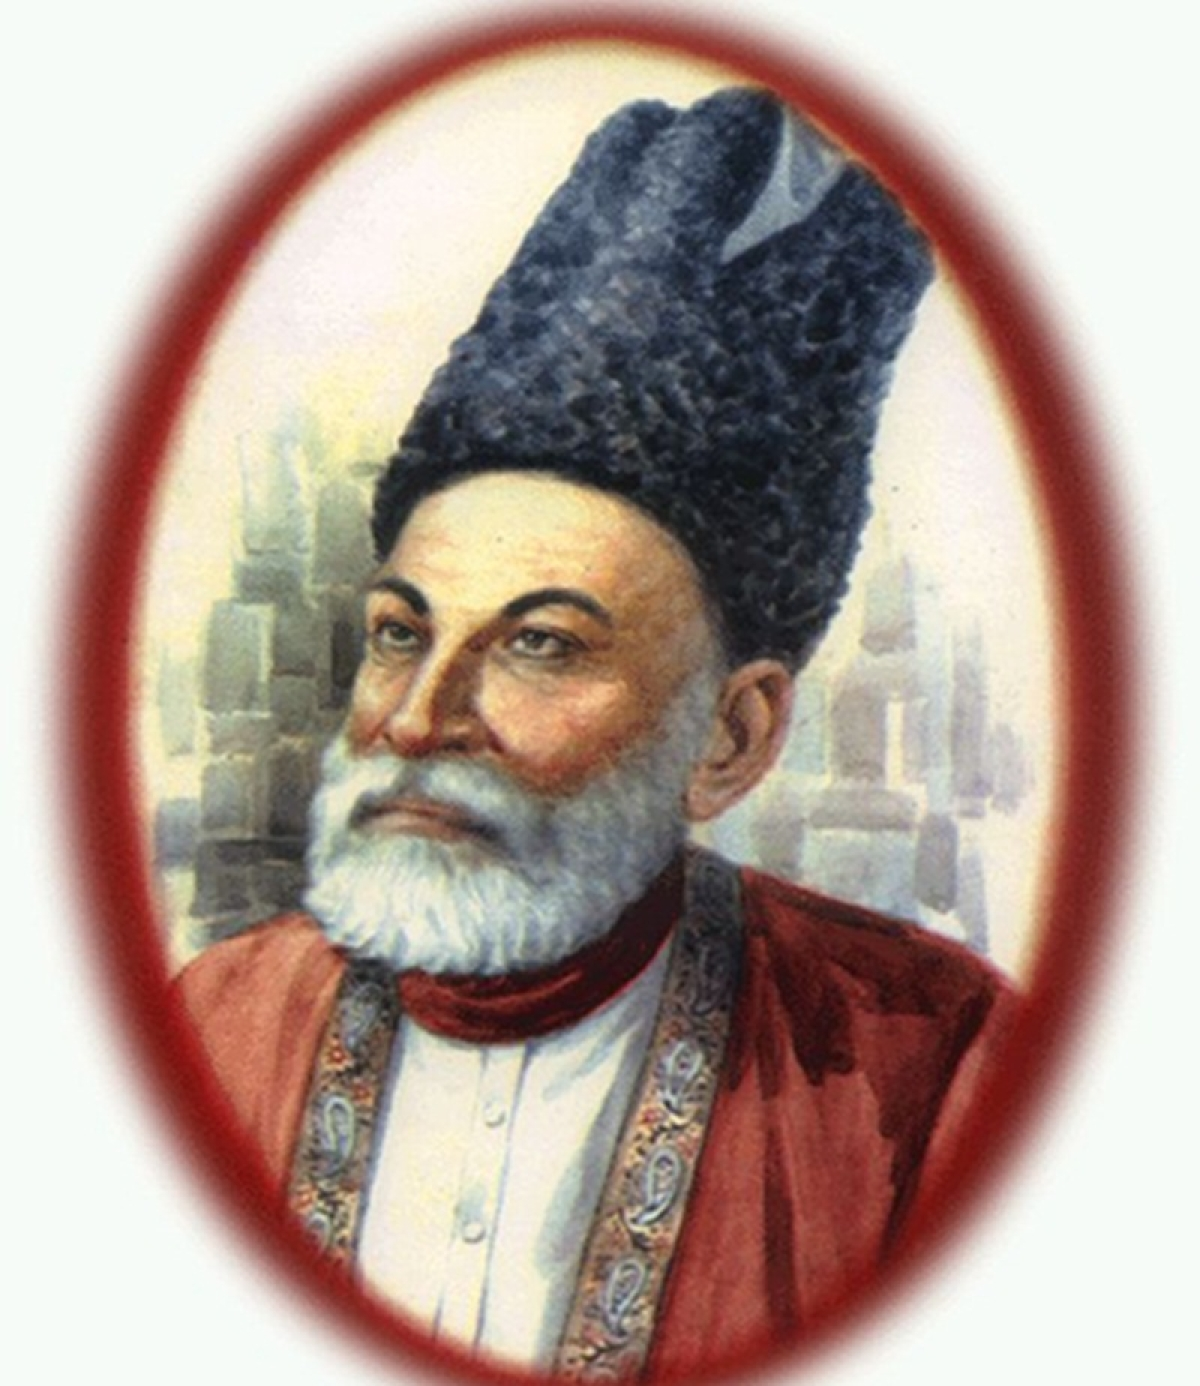 Why Mirza Ghalib can't be considered as a great Persian poet